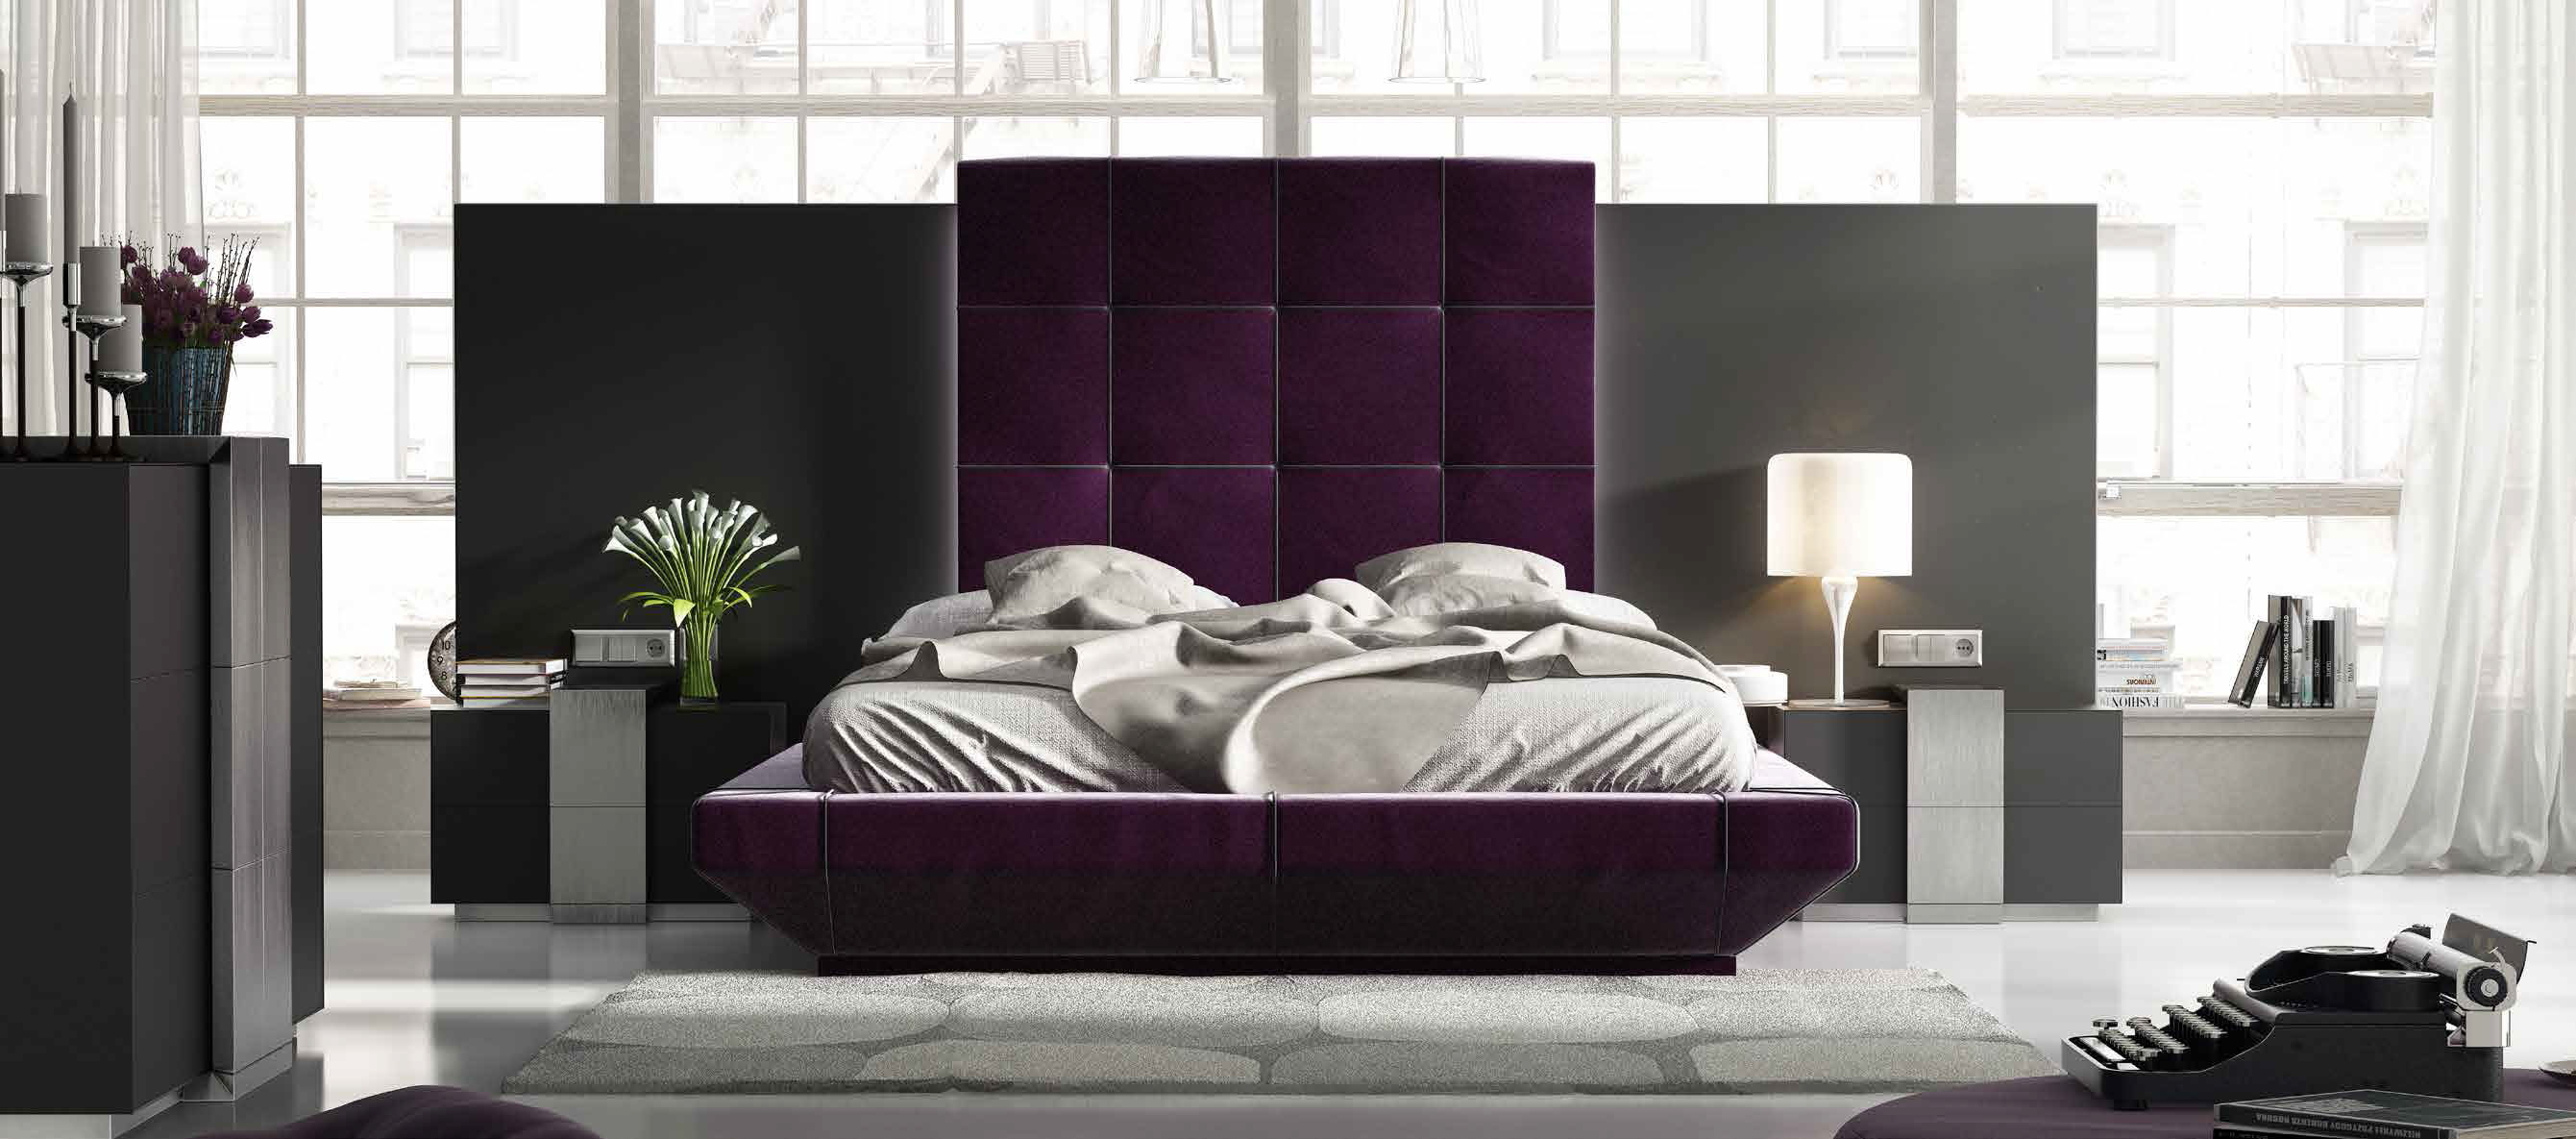 Brands Franco Furniture Bedrooms vol1, Spain DOR 01